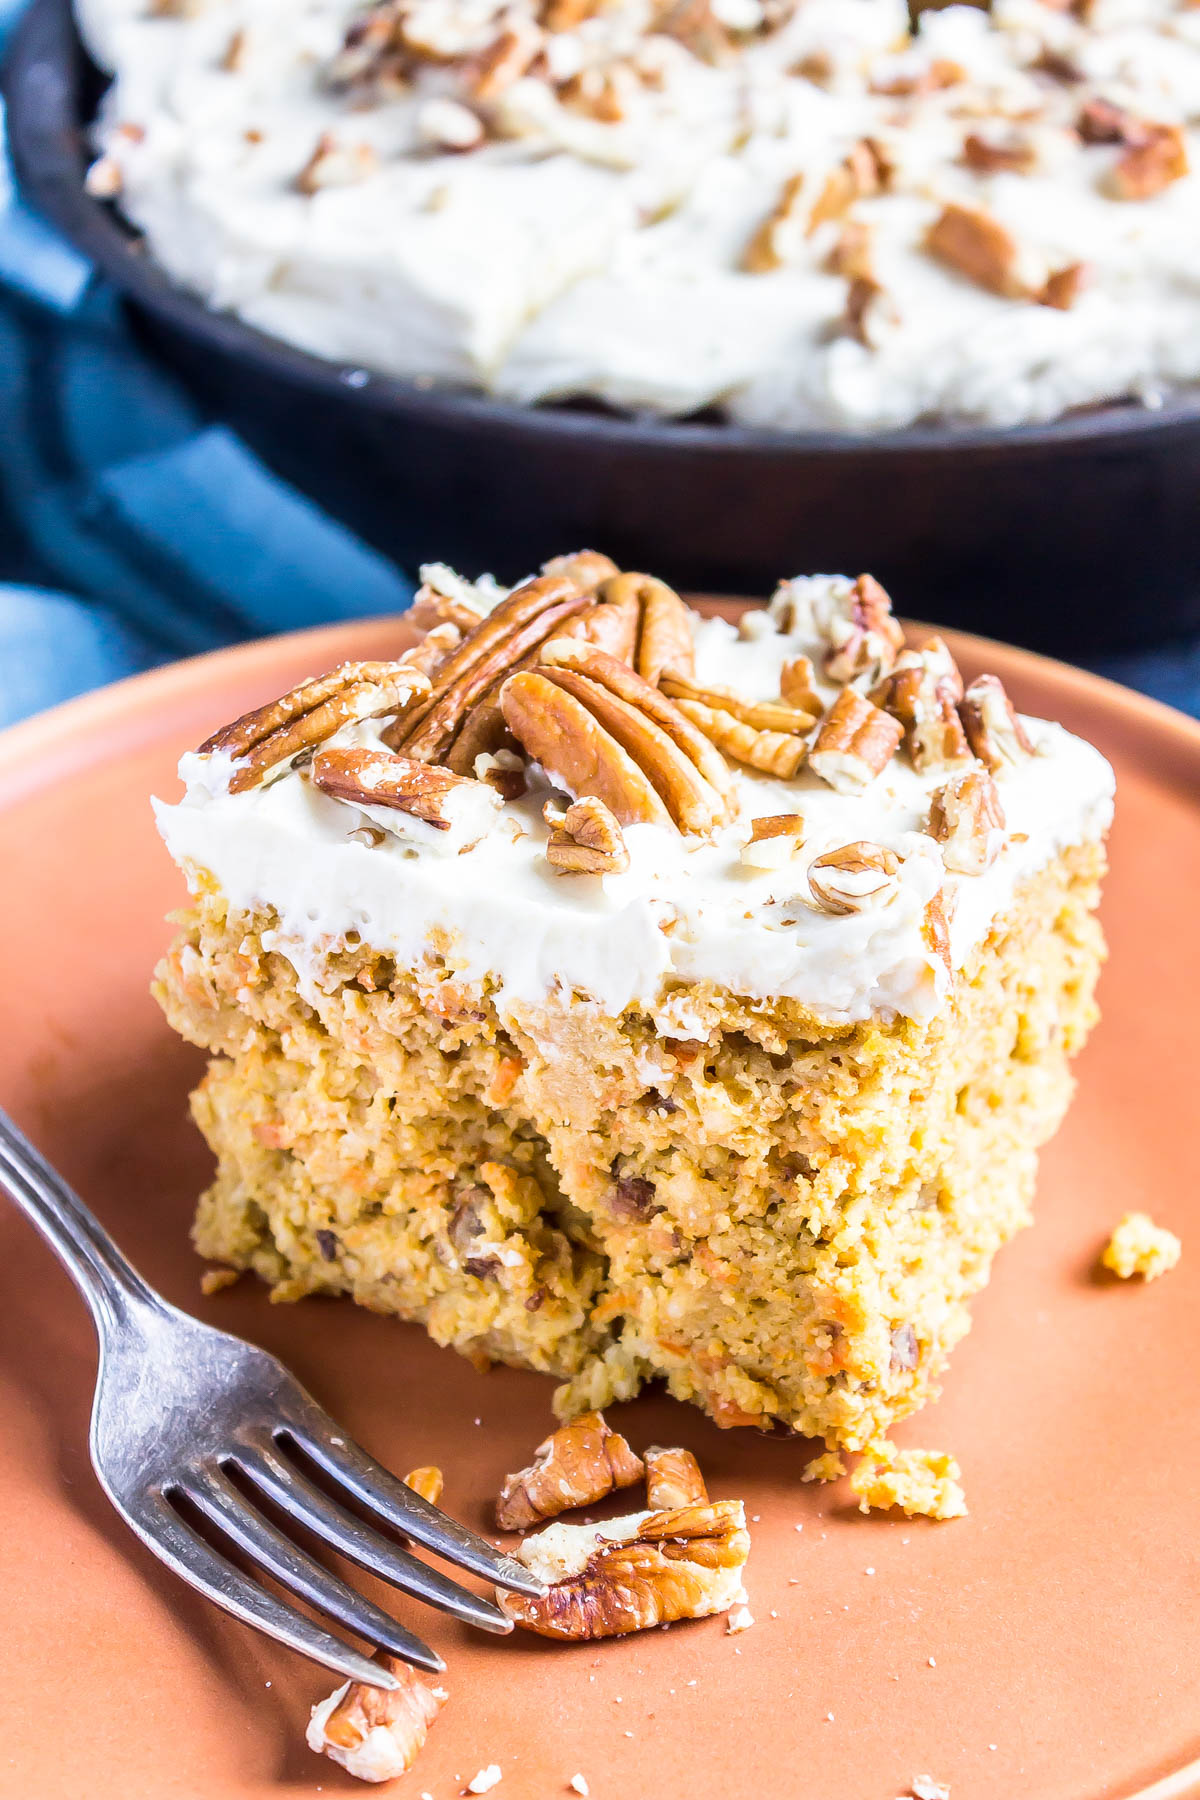 This easy Keto Carrot Cake is perfect for Easter but is a low-carb dessert you wouldn't mind baking all year around. #glutenfree #castiron #ketorecipe #keto #ketogenic #lowcarbrecipe #lowcarb #recipe #easter #easterrecipe #eastercooking #lchf